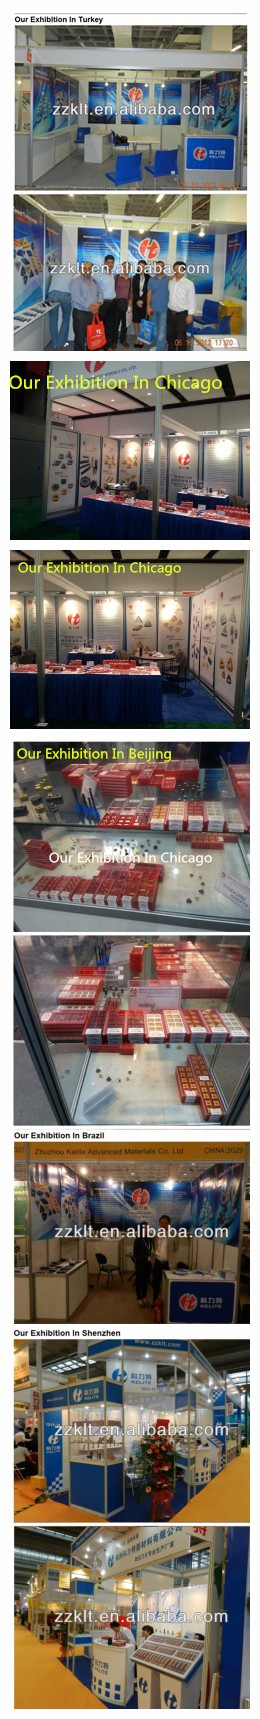 Turning inserts cnmg120408 -mt manufacture in zhuzhou China